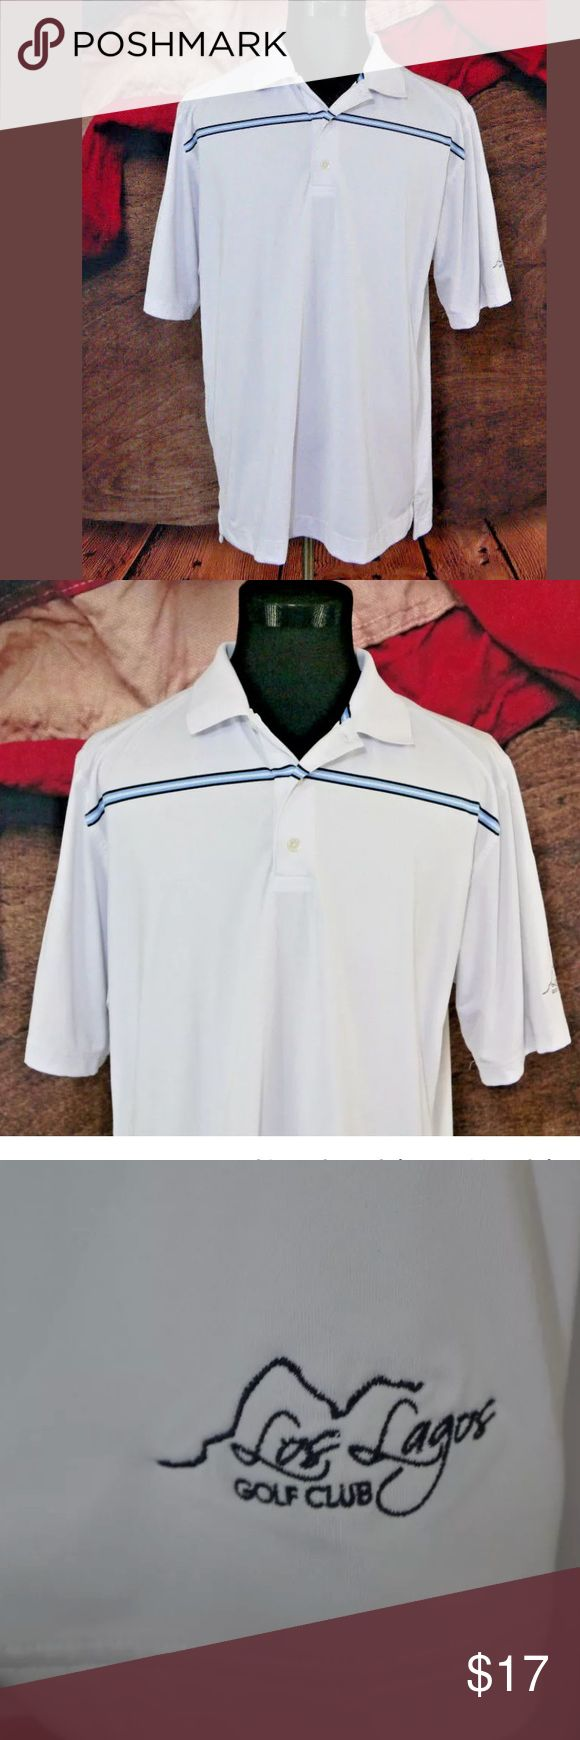 """FOOTJOY FJ Mens Golf Polo  Off White Size XL Pre-Owned in Excellent Condition FOOTJOY FJ Mens Golf Polo Shirt Off White Blue striped Size XL EUC   Size: XL  Material: 88% Polyester / 12% Spandex  Color: Off White with Blue, Black, White Stripe  Measurements: Chest: 25"""" / Sleeve: 12"""" / Shoulders: 20"""" / Length: 32"""" FootJoy Shirts Polos"""